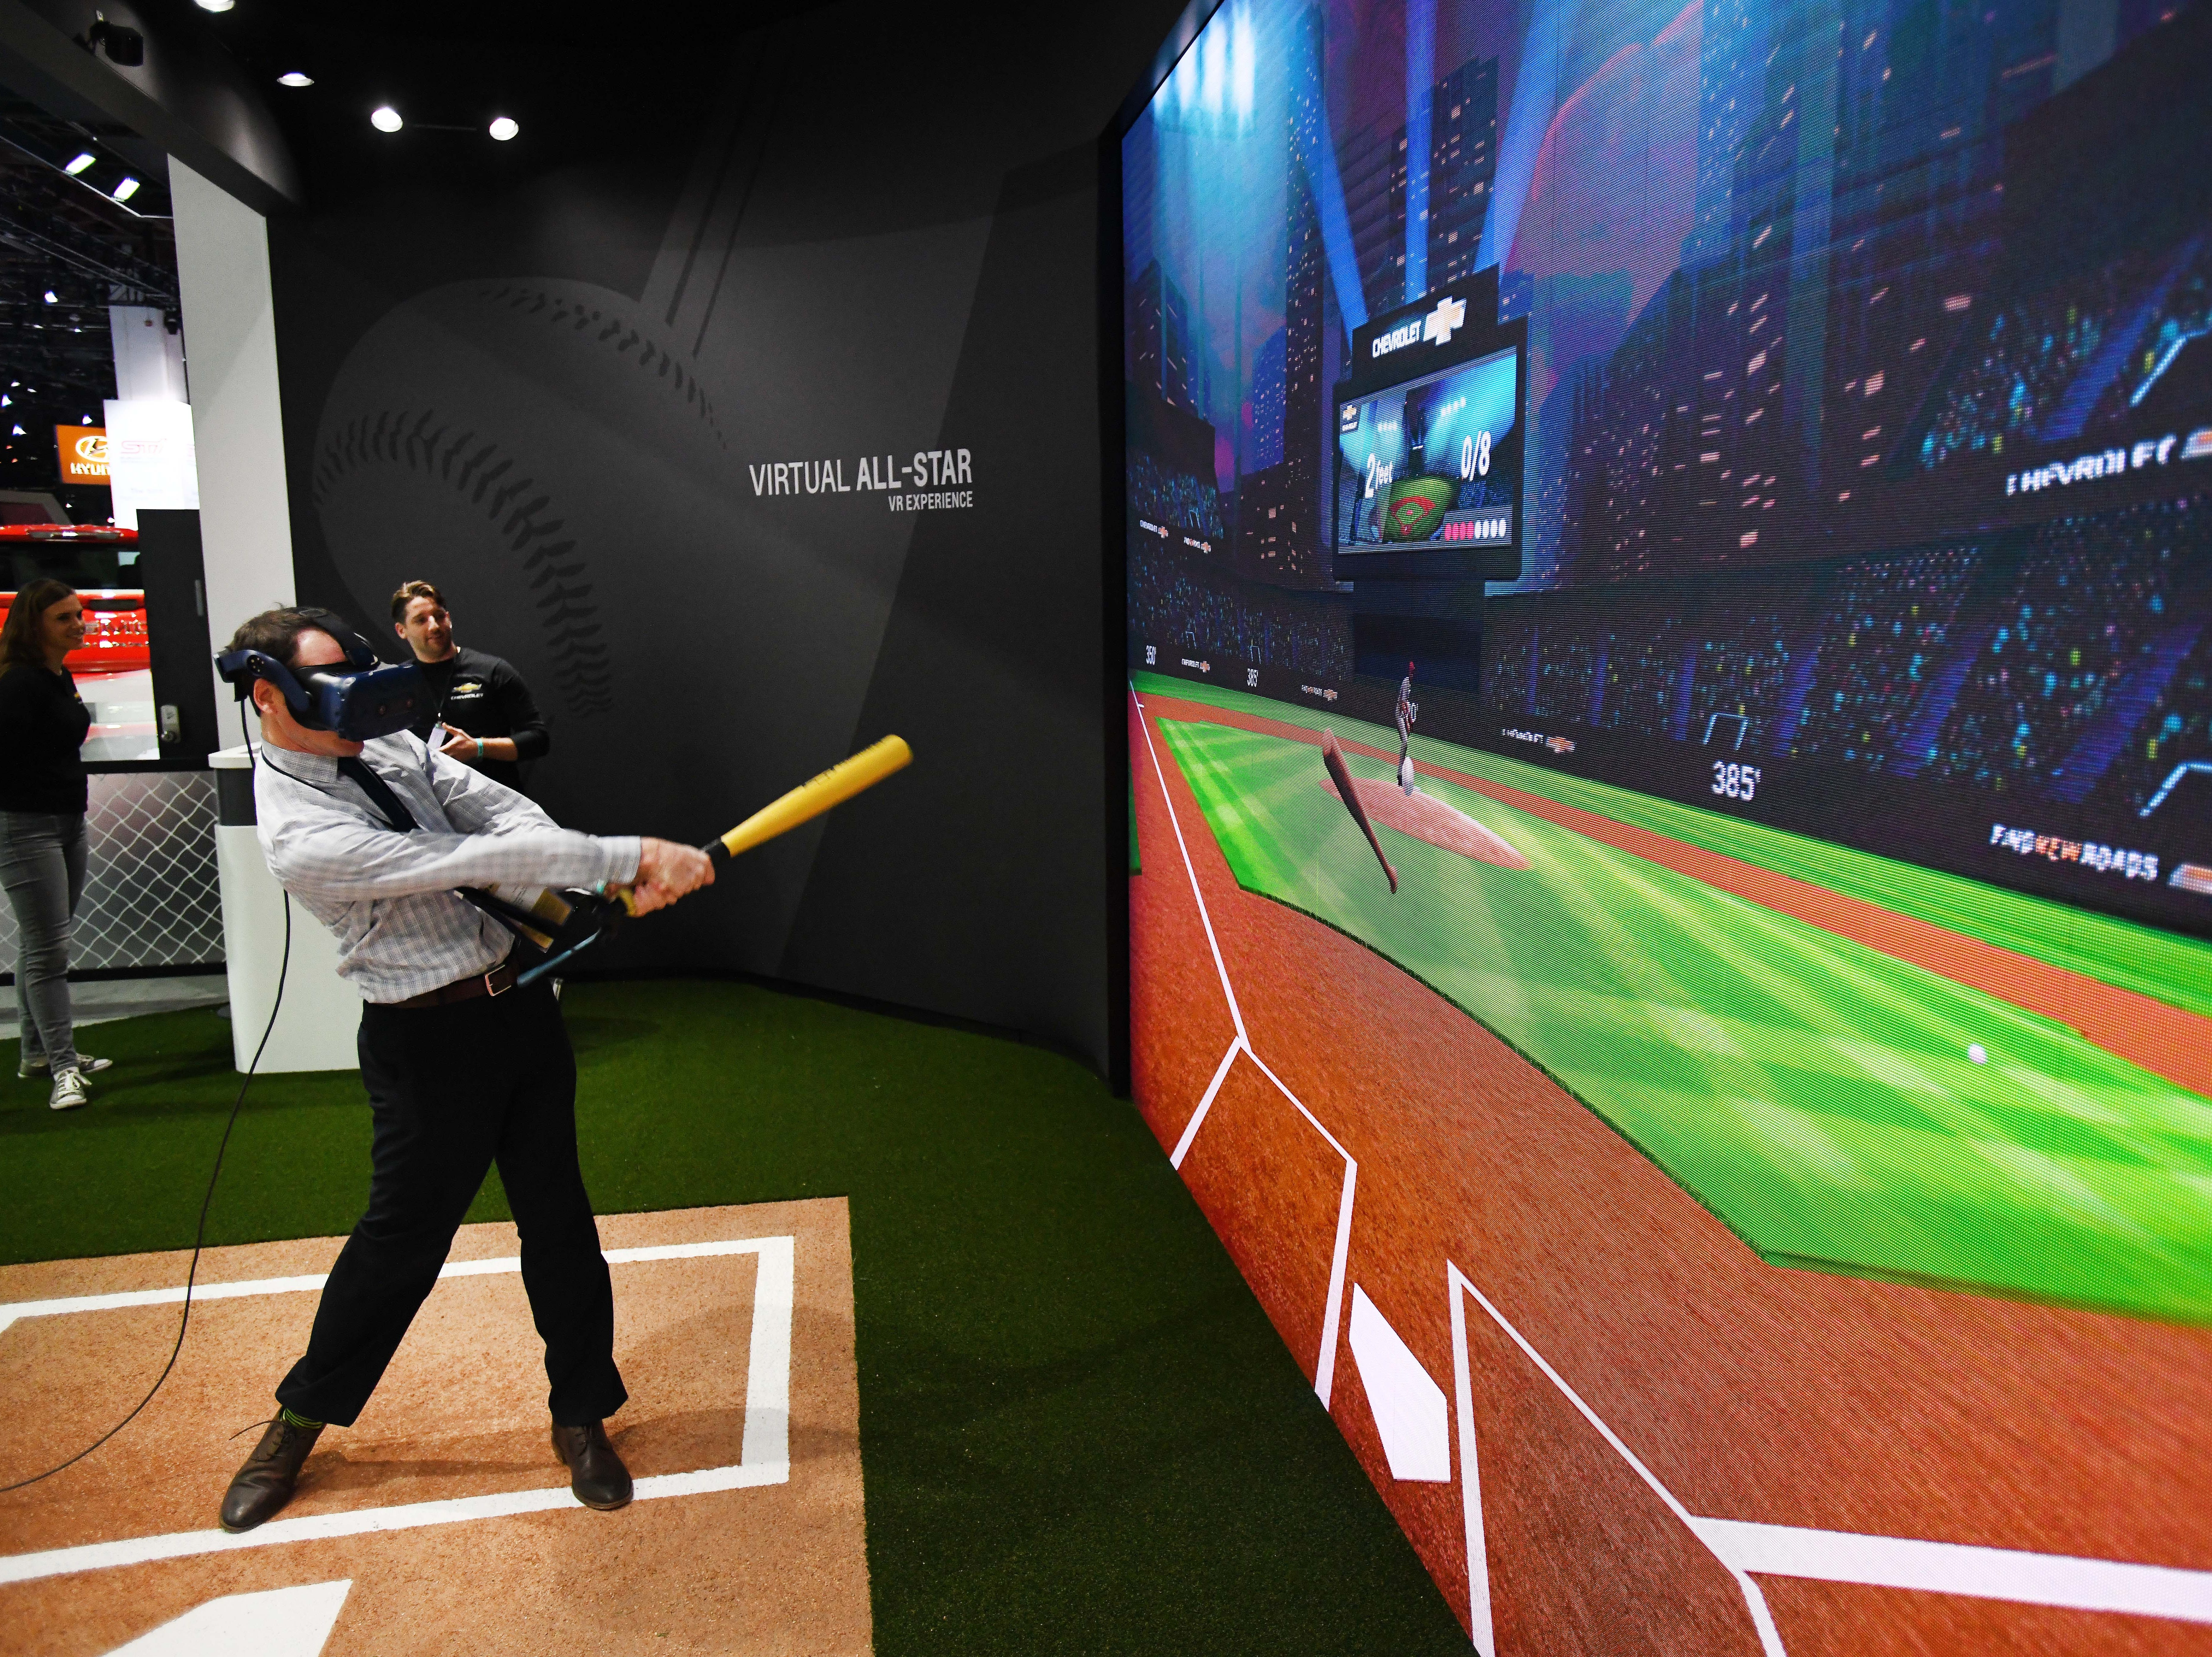 Todd Wasik takes a whack at the Chevrolet Virtual All- Star experience at the North American International Auto Show.